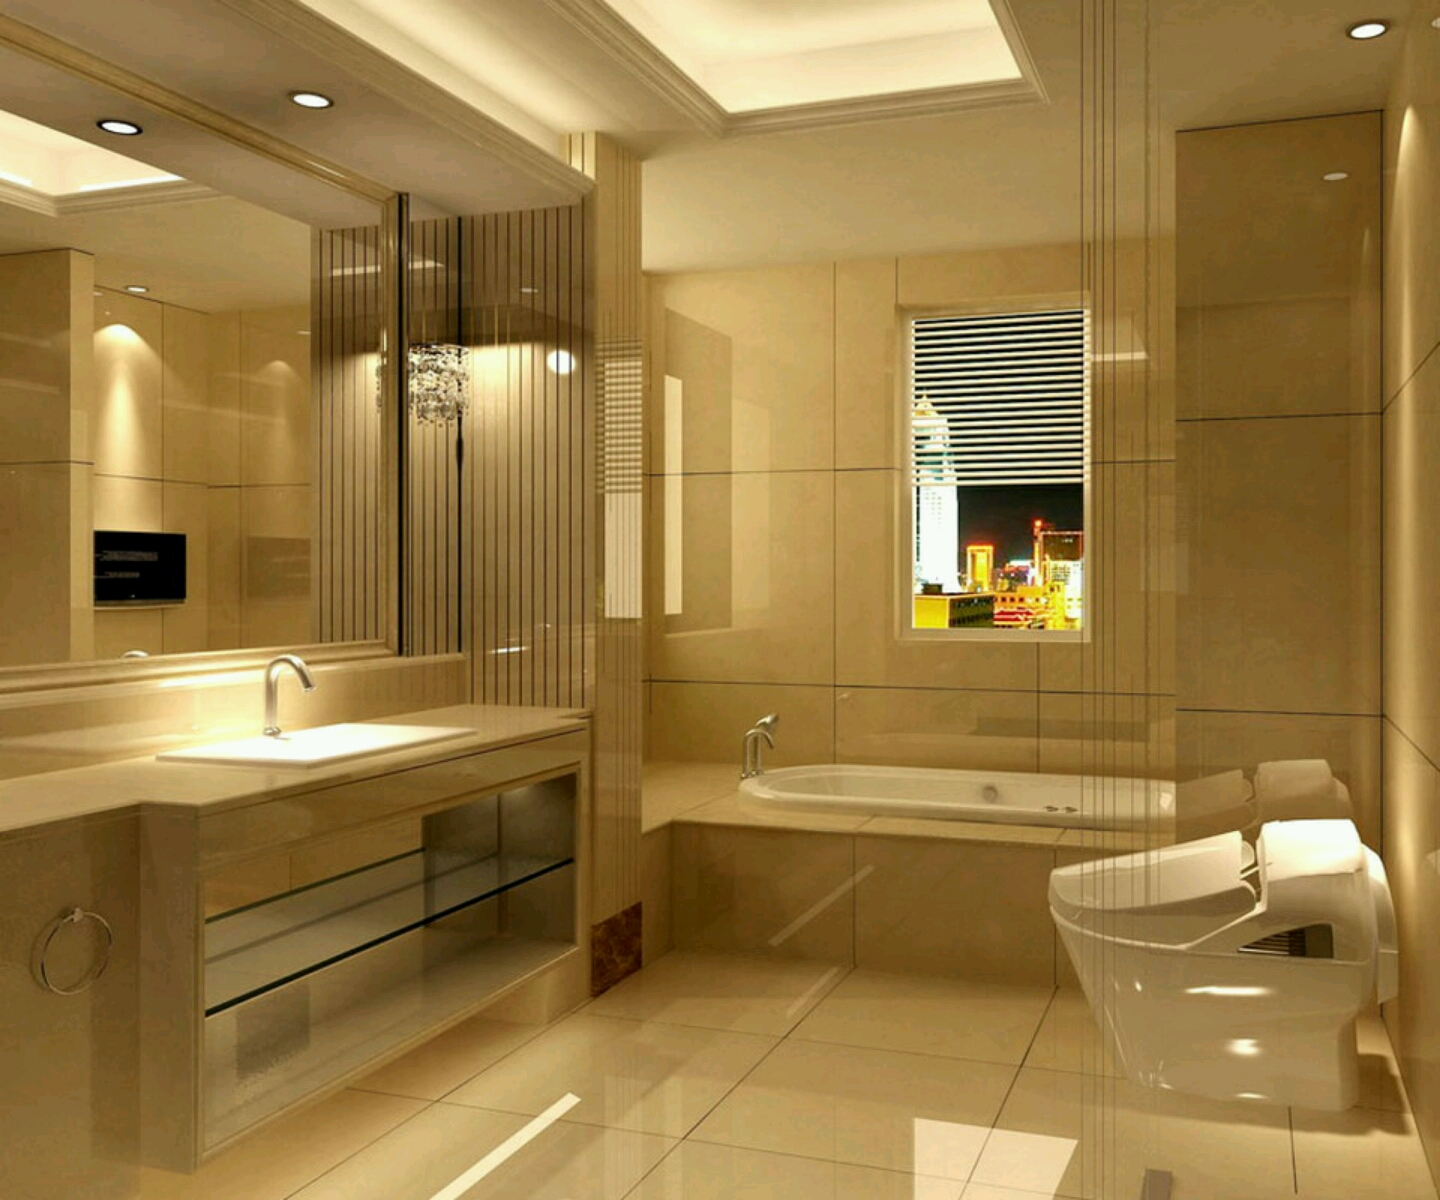 Modern bathrooms setting ideas furniture gallery - Bathroom photo desin ...